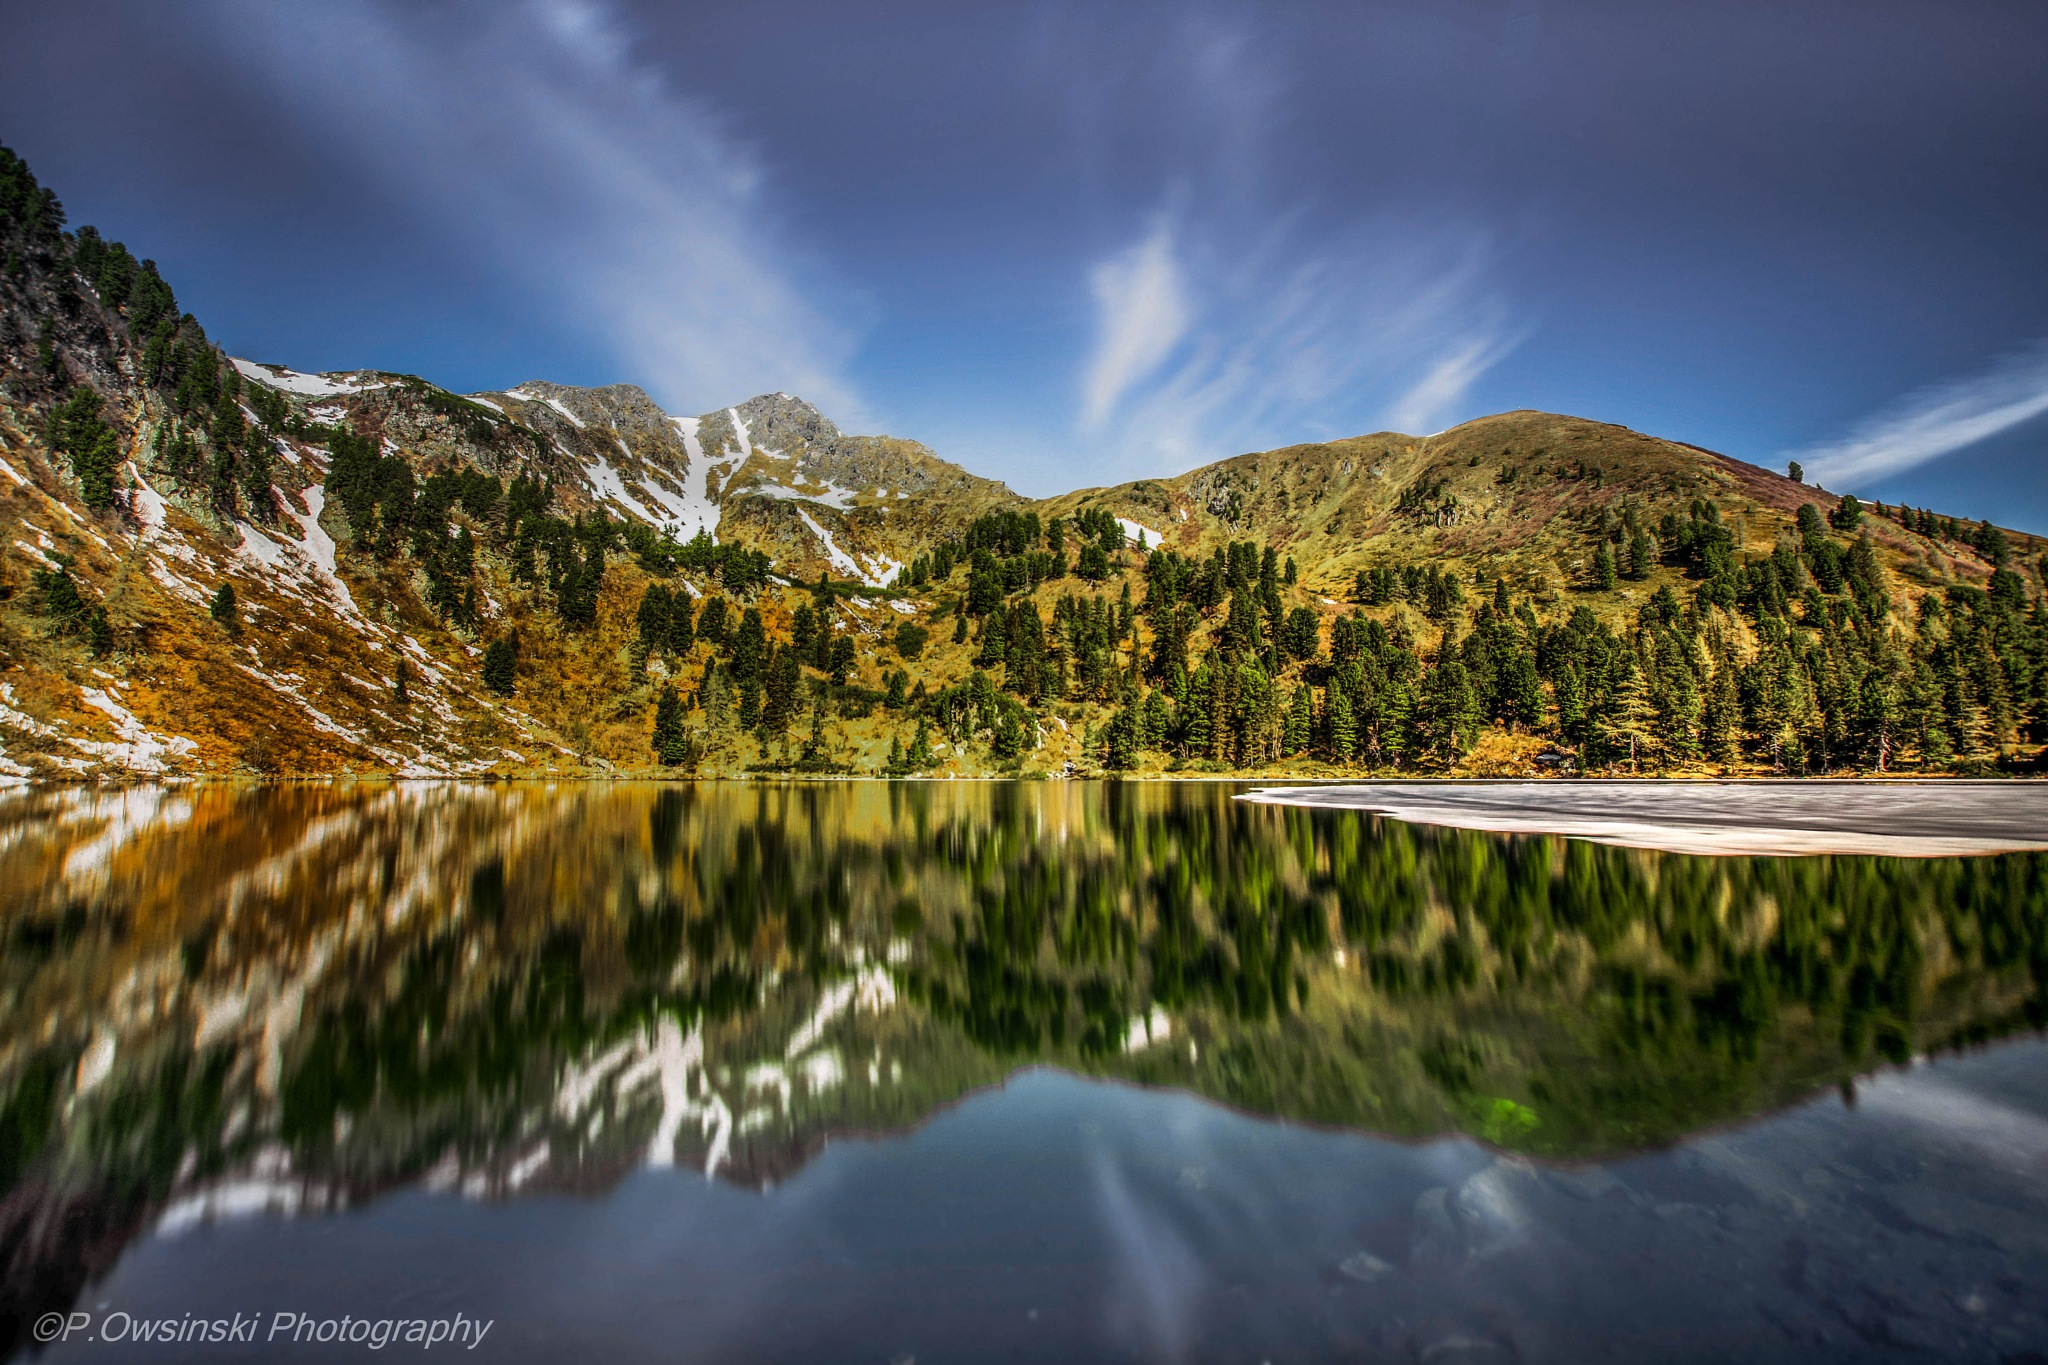 The Lake Großer Scheibelsee by naturfotografieat